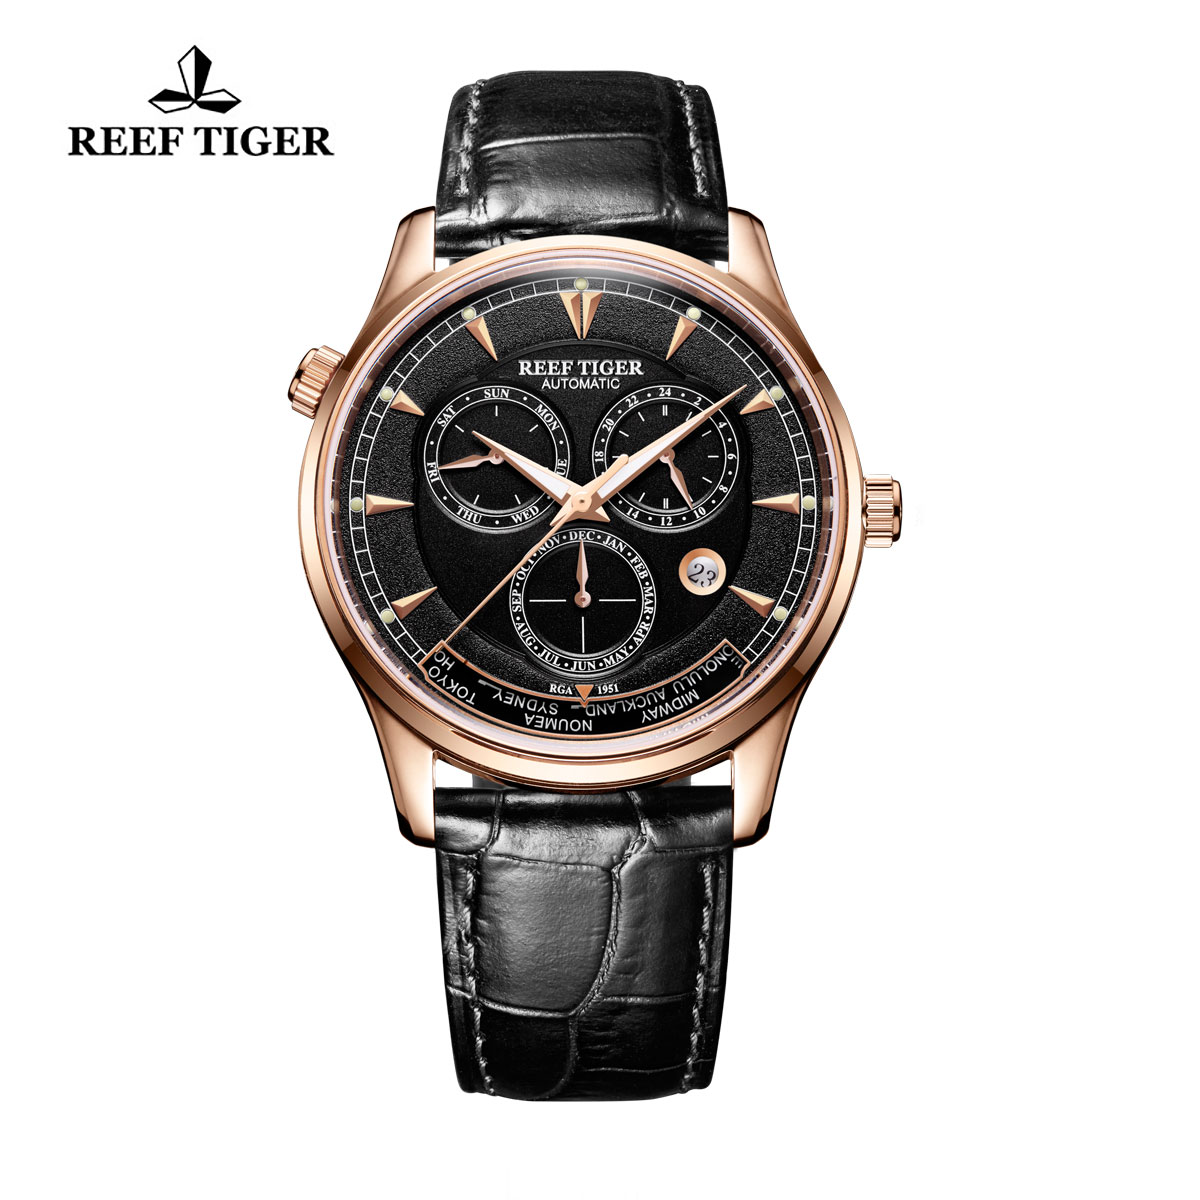 Reef Tiger Geographer Black Dial World Time with Day Date Month Rose Gold Watch RGA1951-PBB